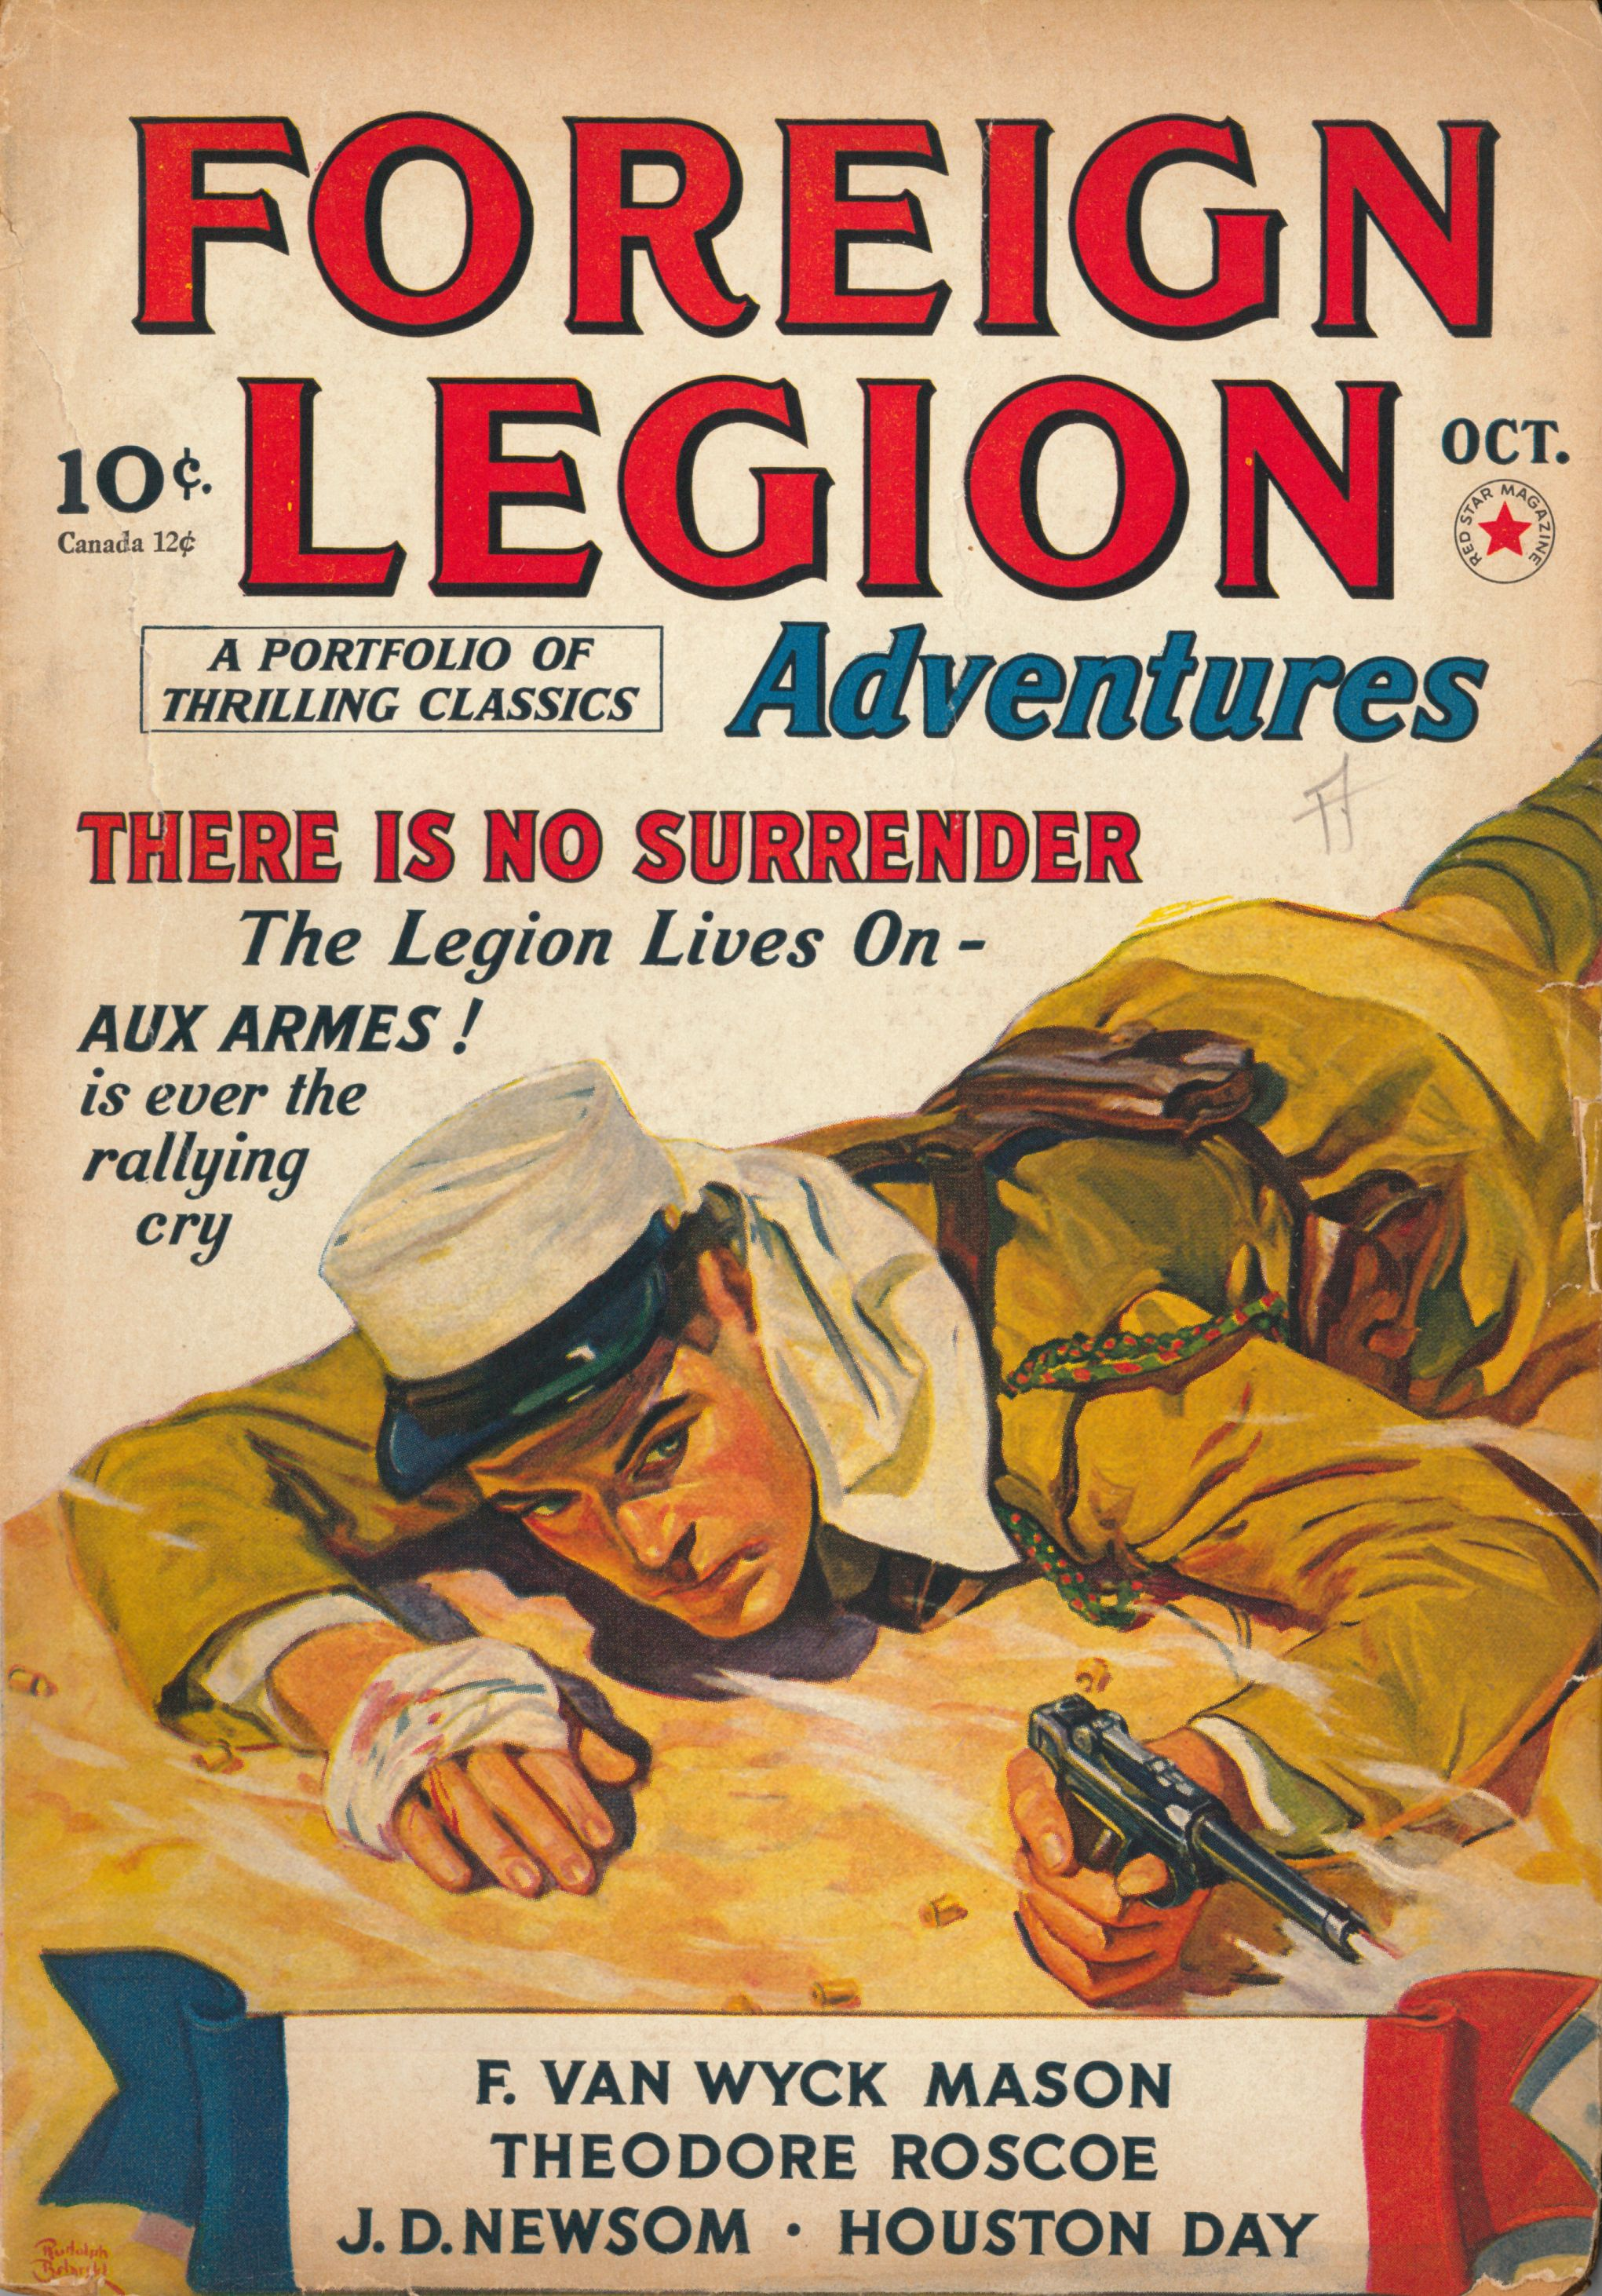 https://pulpcovers.com/wp-content/uploads/2015/11/Foreign-Legion-Adventures-October-1940.jpg